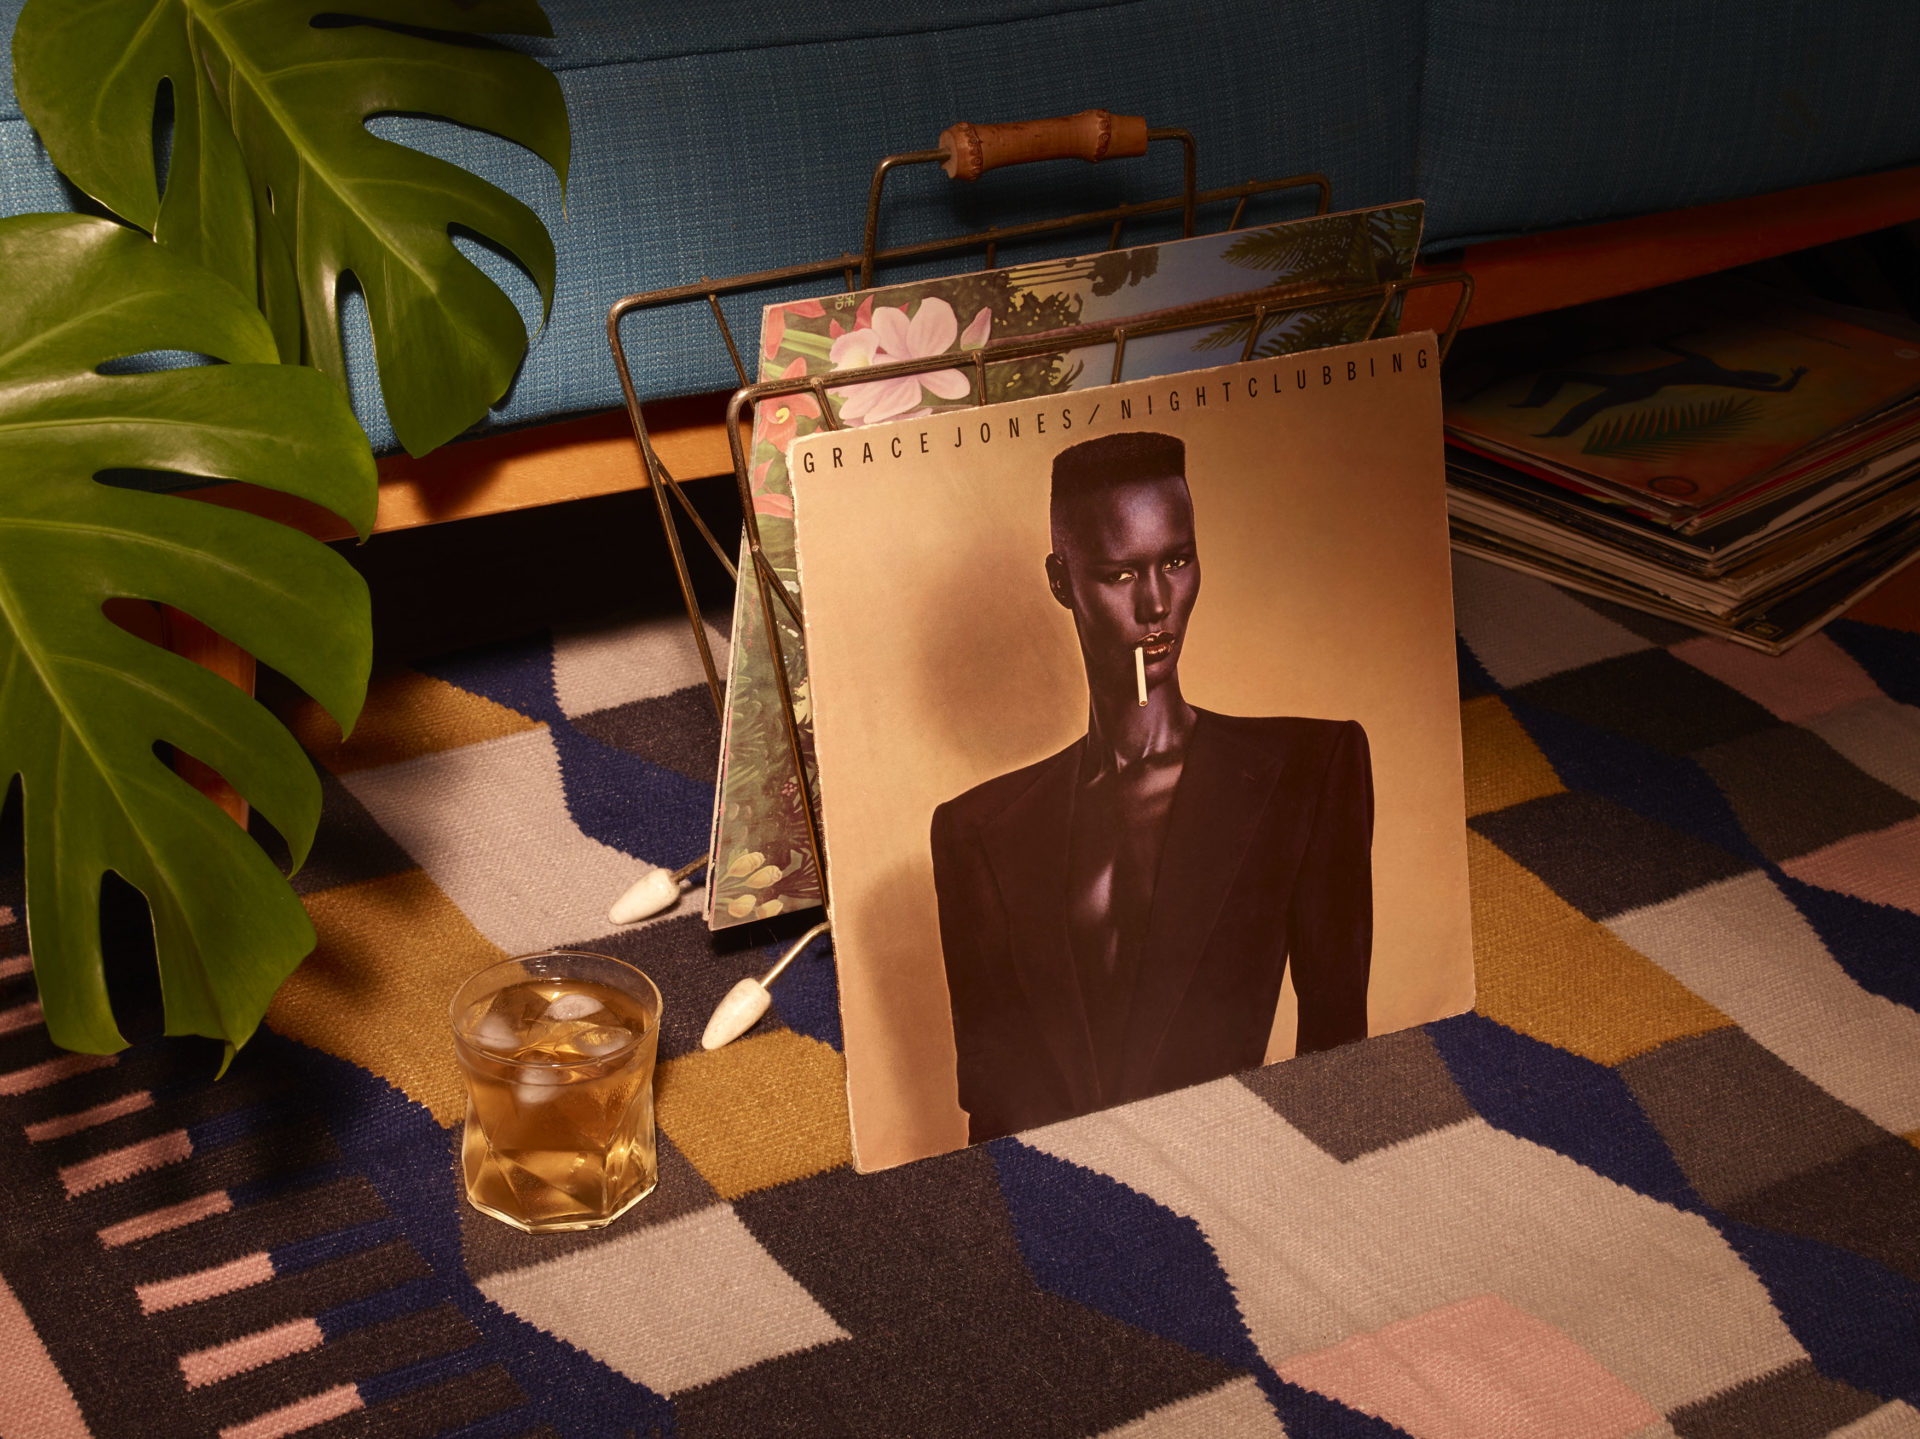 – Shaw & Shaw Photography – Shaw and Shaw Photographers Manchester – advertising photographers – graphic image – Grace Jones Vinyl – record store day – Grace Jones Nightclubbing